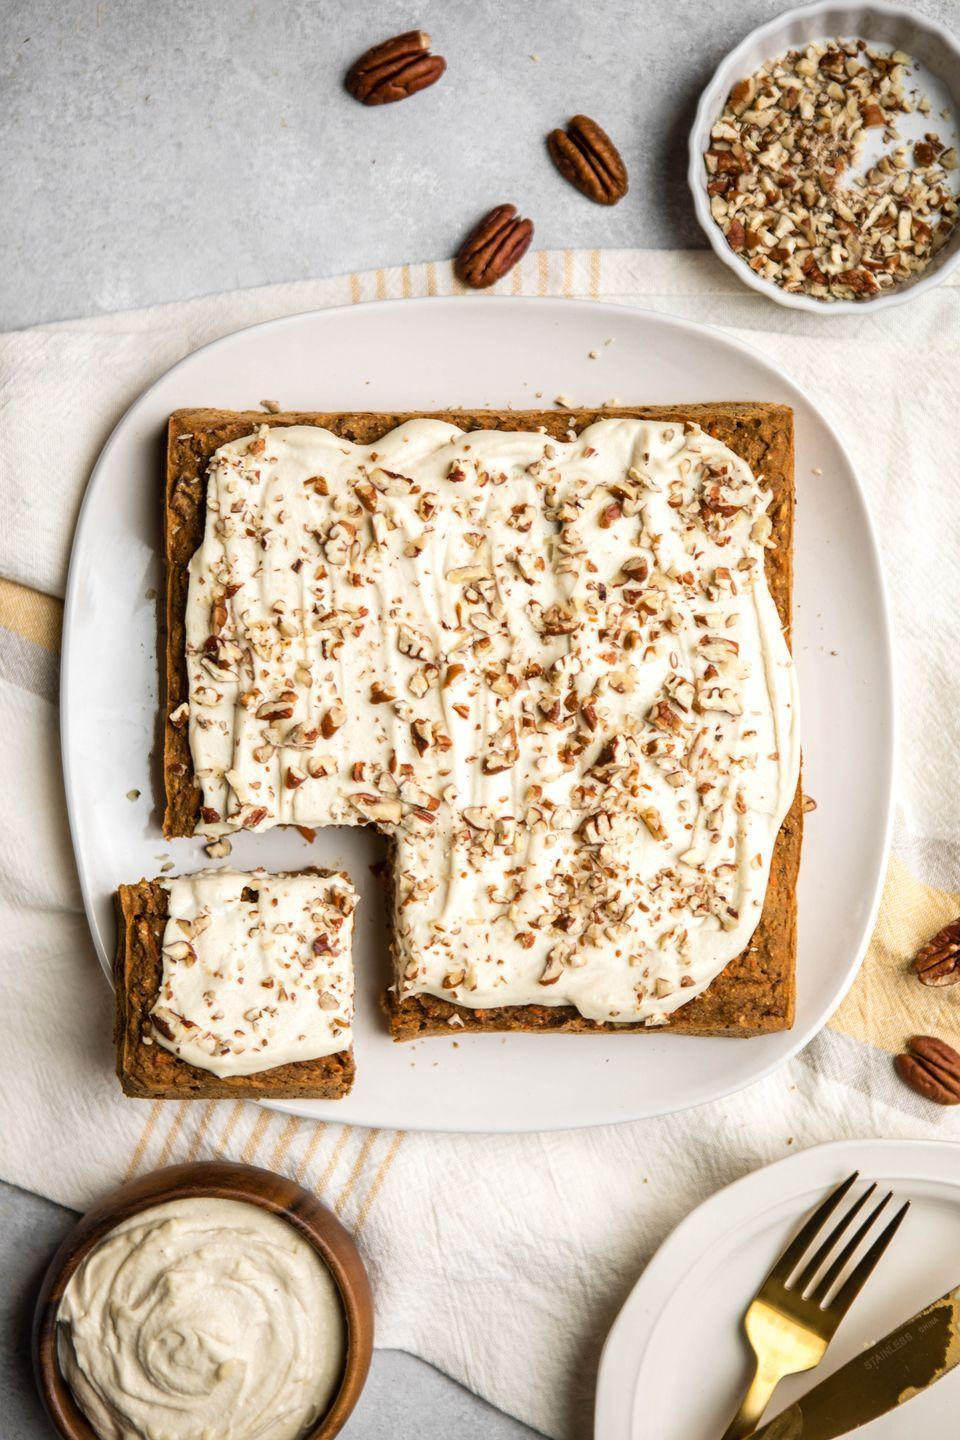 "<p>Carrot cake not only gets a vegan makeover, but also a healthy one since you don't have to use a drop of oil in this recipe. </p><p><em><a href=""https://frommybowl.com/healthy-carrot-cake/"" rel=""nofollow noopener"" target=""_blank"" data-ylk=""slk:Get the recipe at From My Bowl »"" class=""link rapid-noclick-resp"">Get the recipe at From My Bowl »</a></em></p>"